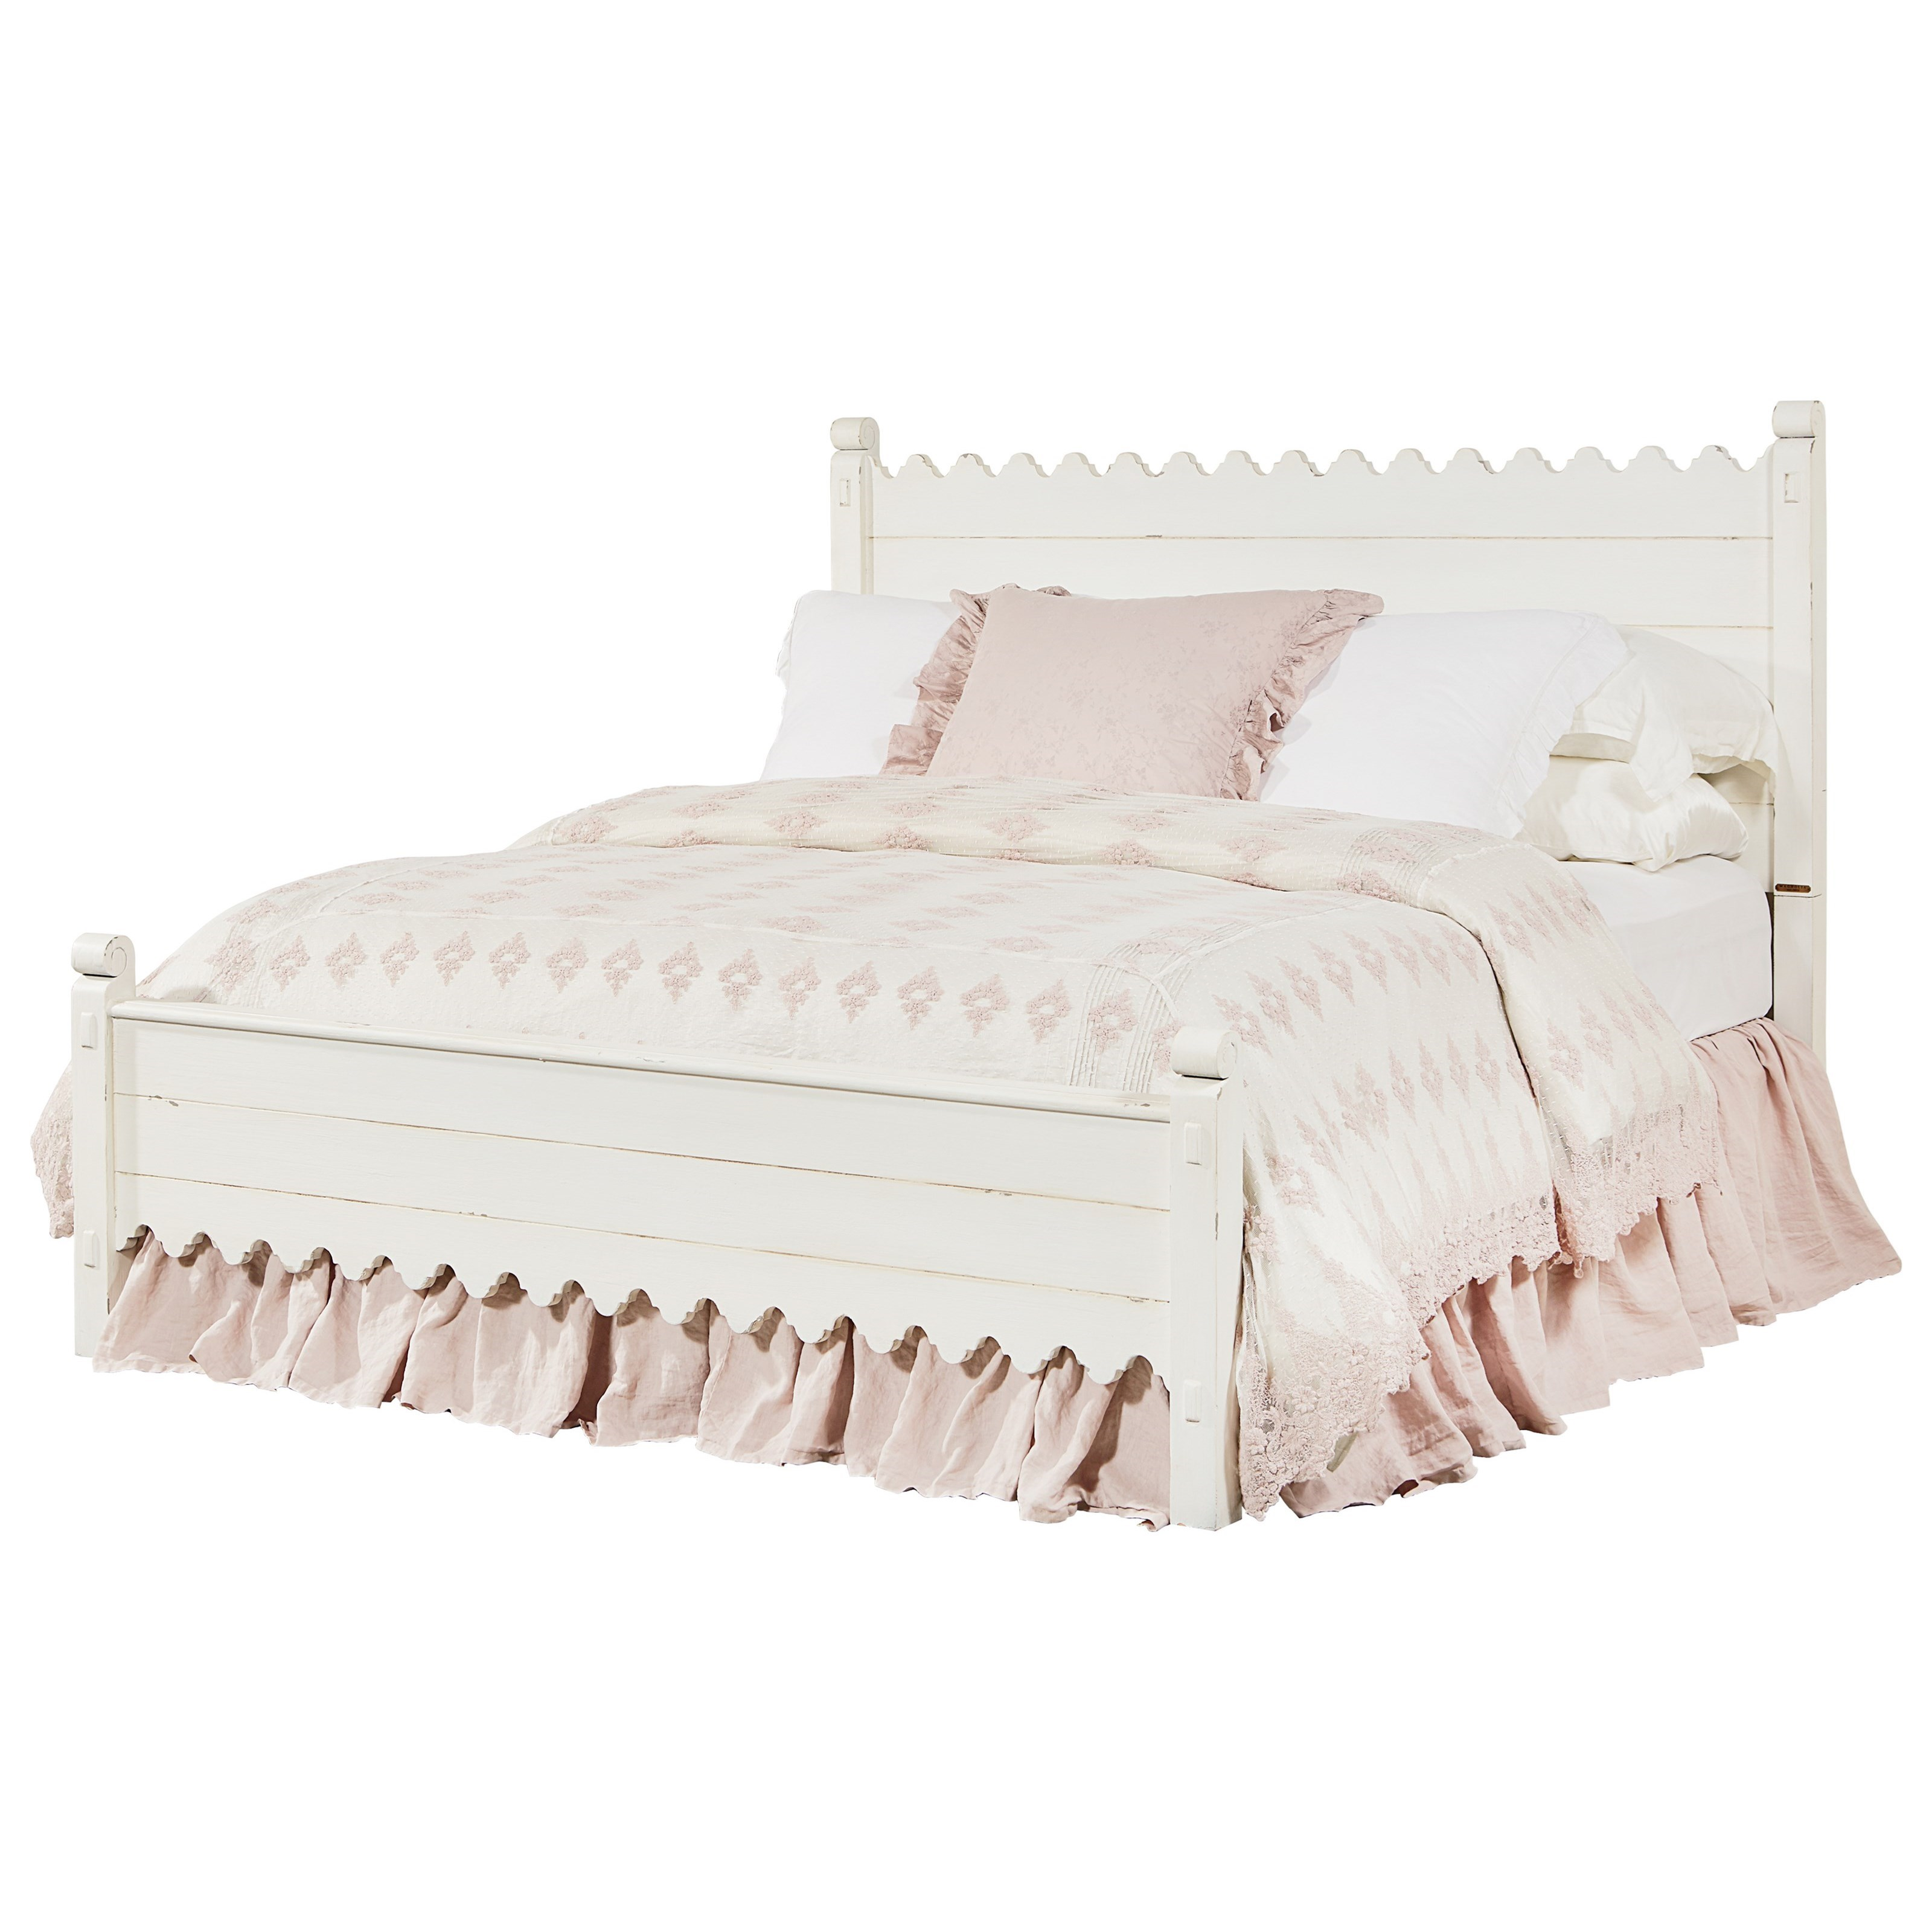 to cover flat complement scallop i refresh bedding duvet sheets the sheet layered between white quilt hill sam and lane than rather story scalloped a